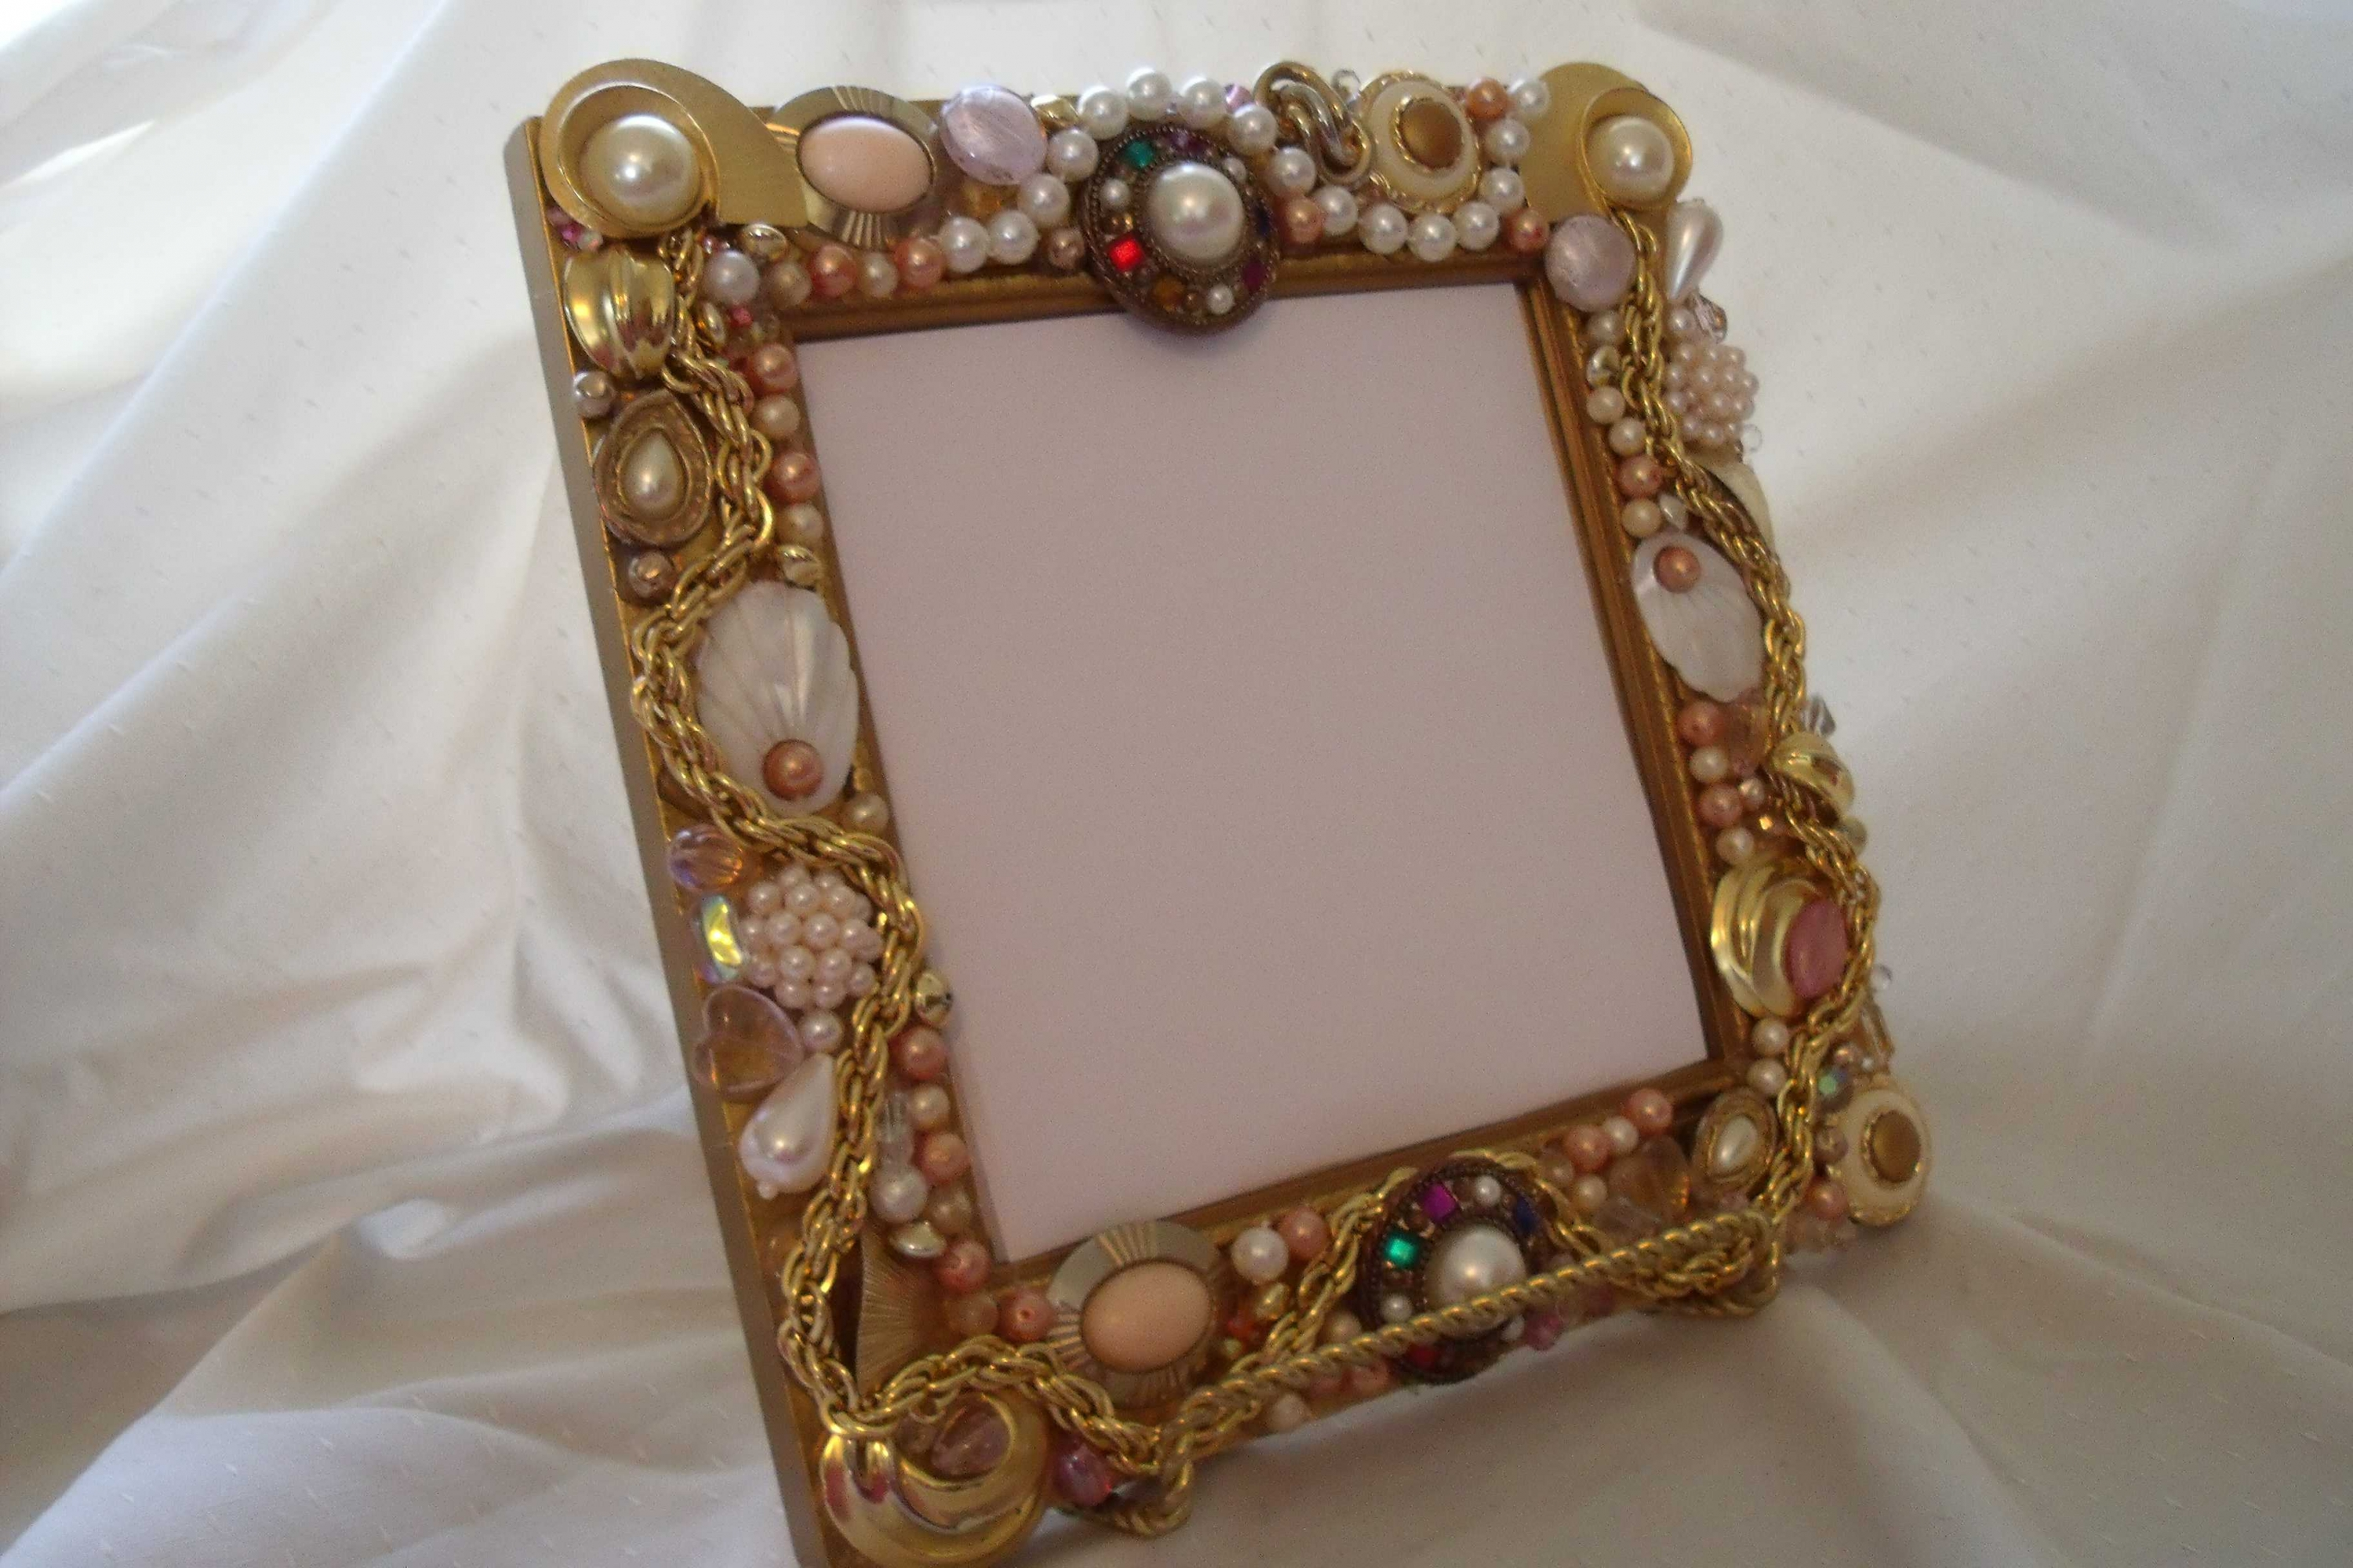 jewelry for jeweled frame mirror w vintage jewelry for sale item 10832 5906